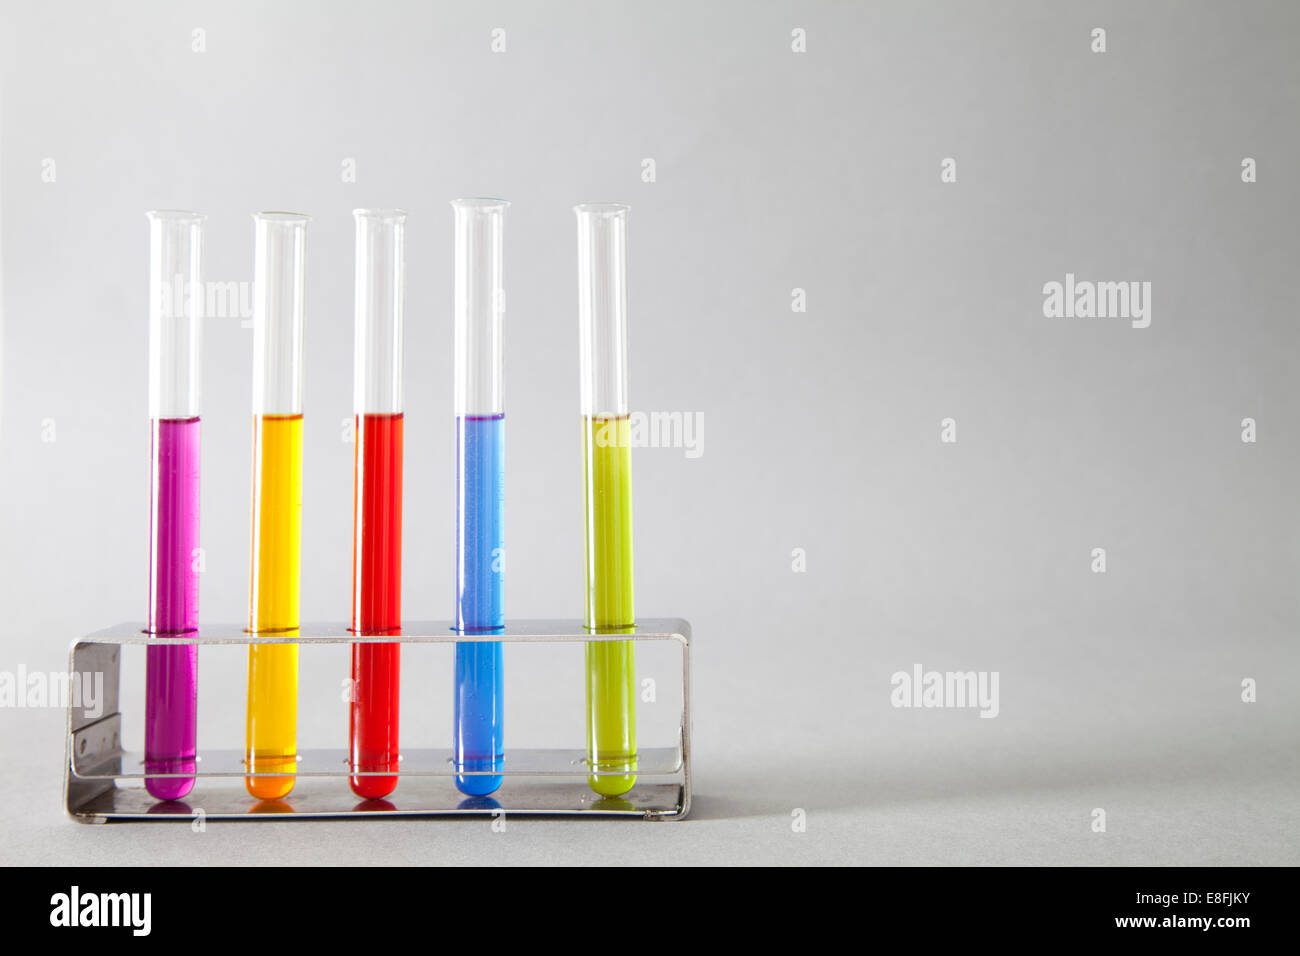 Colored liquids in test tubes - Stock Image